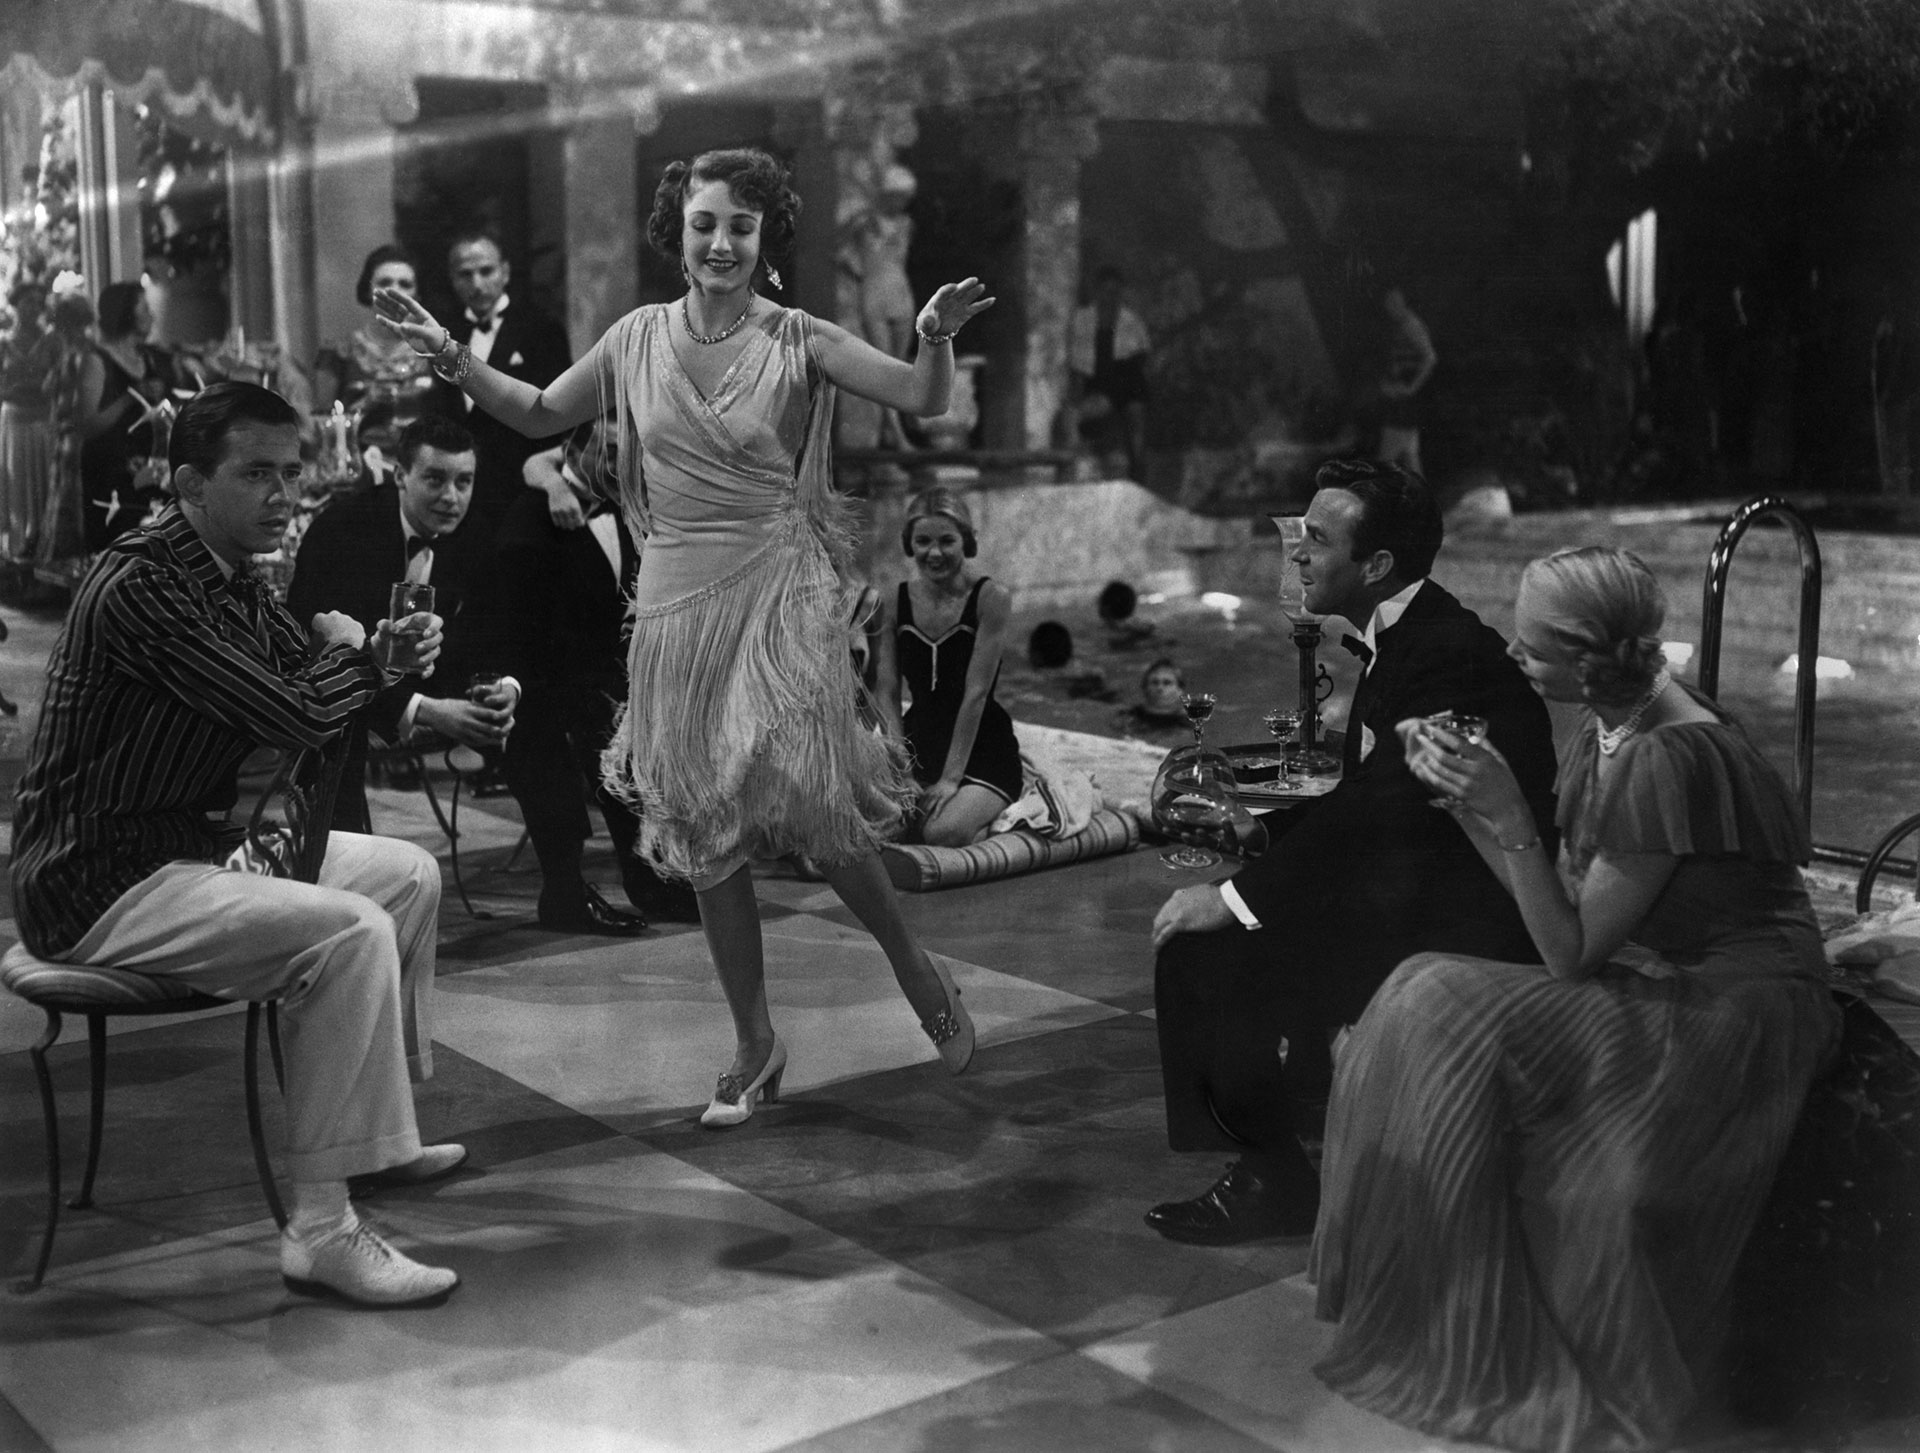 Dancing the Charleston, scene from The Great Gatsby